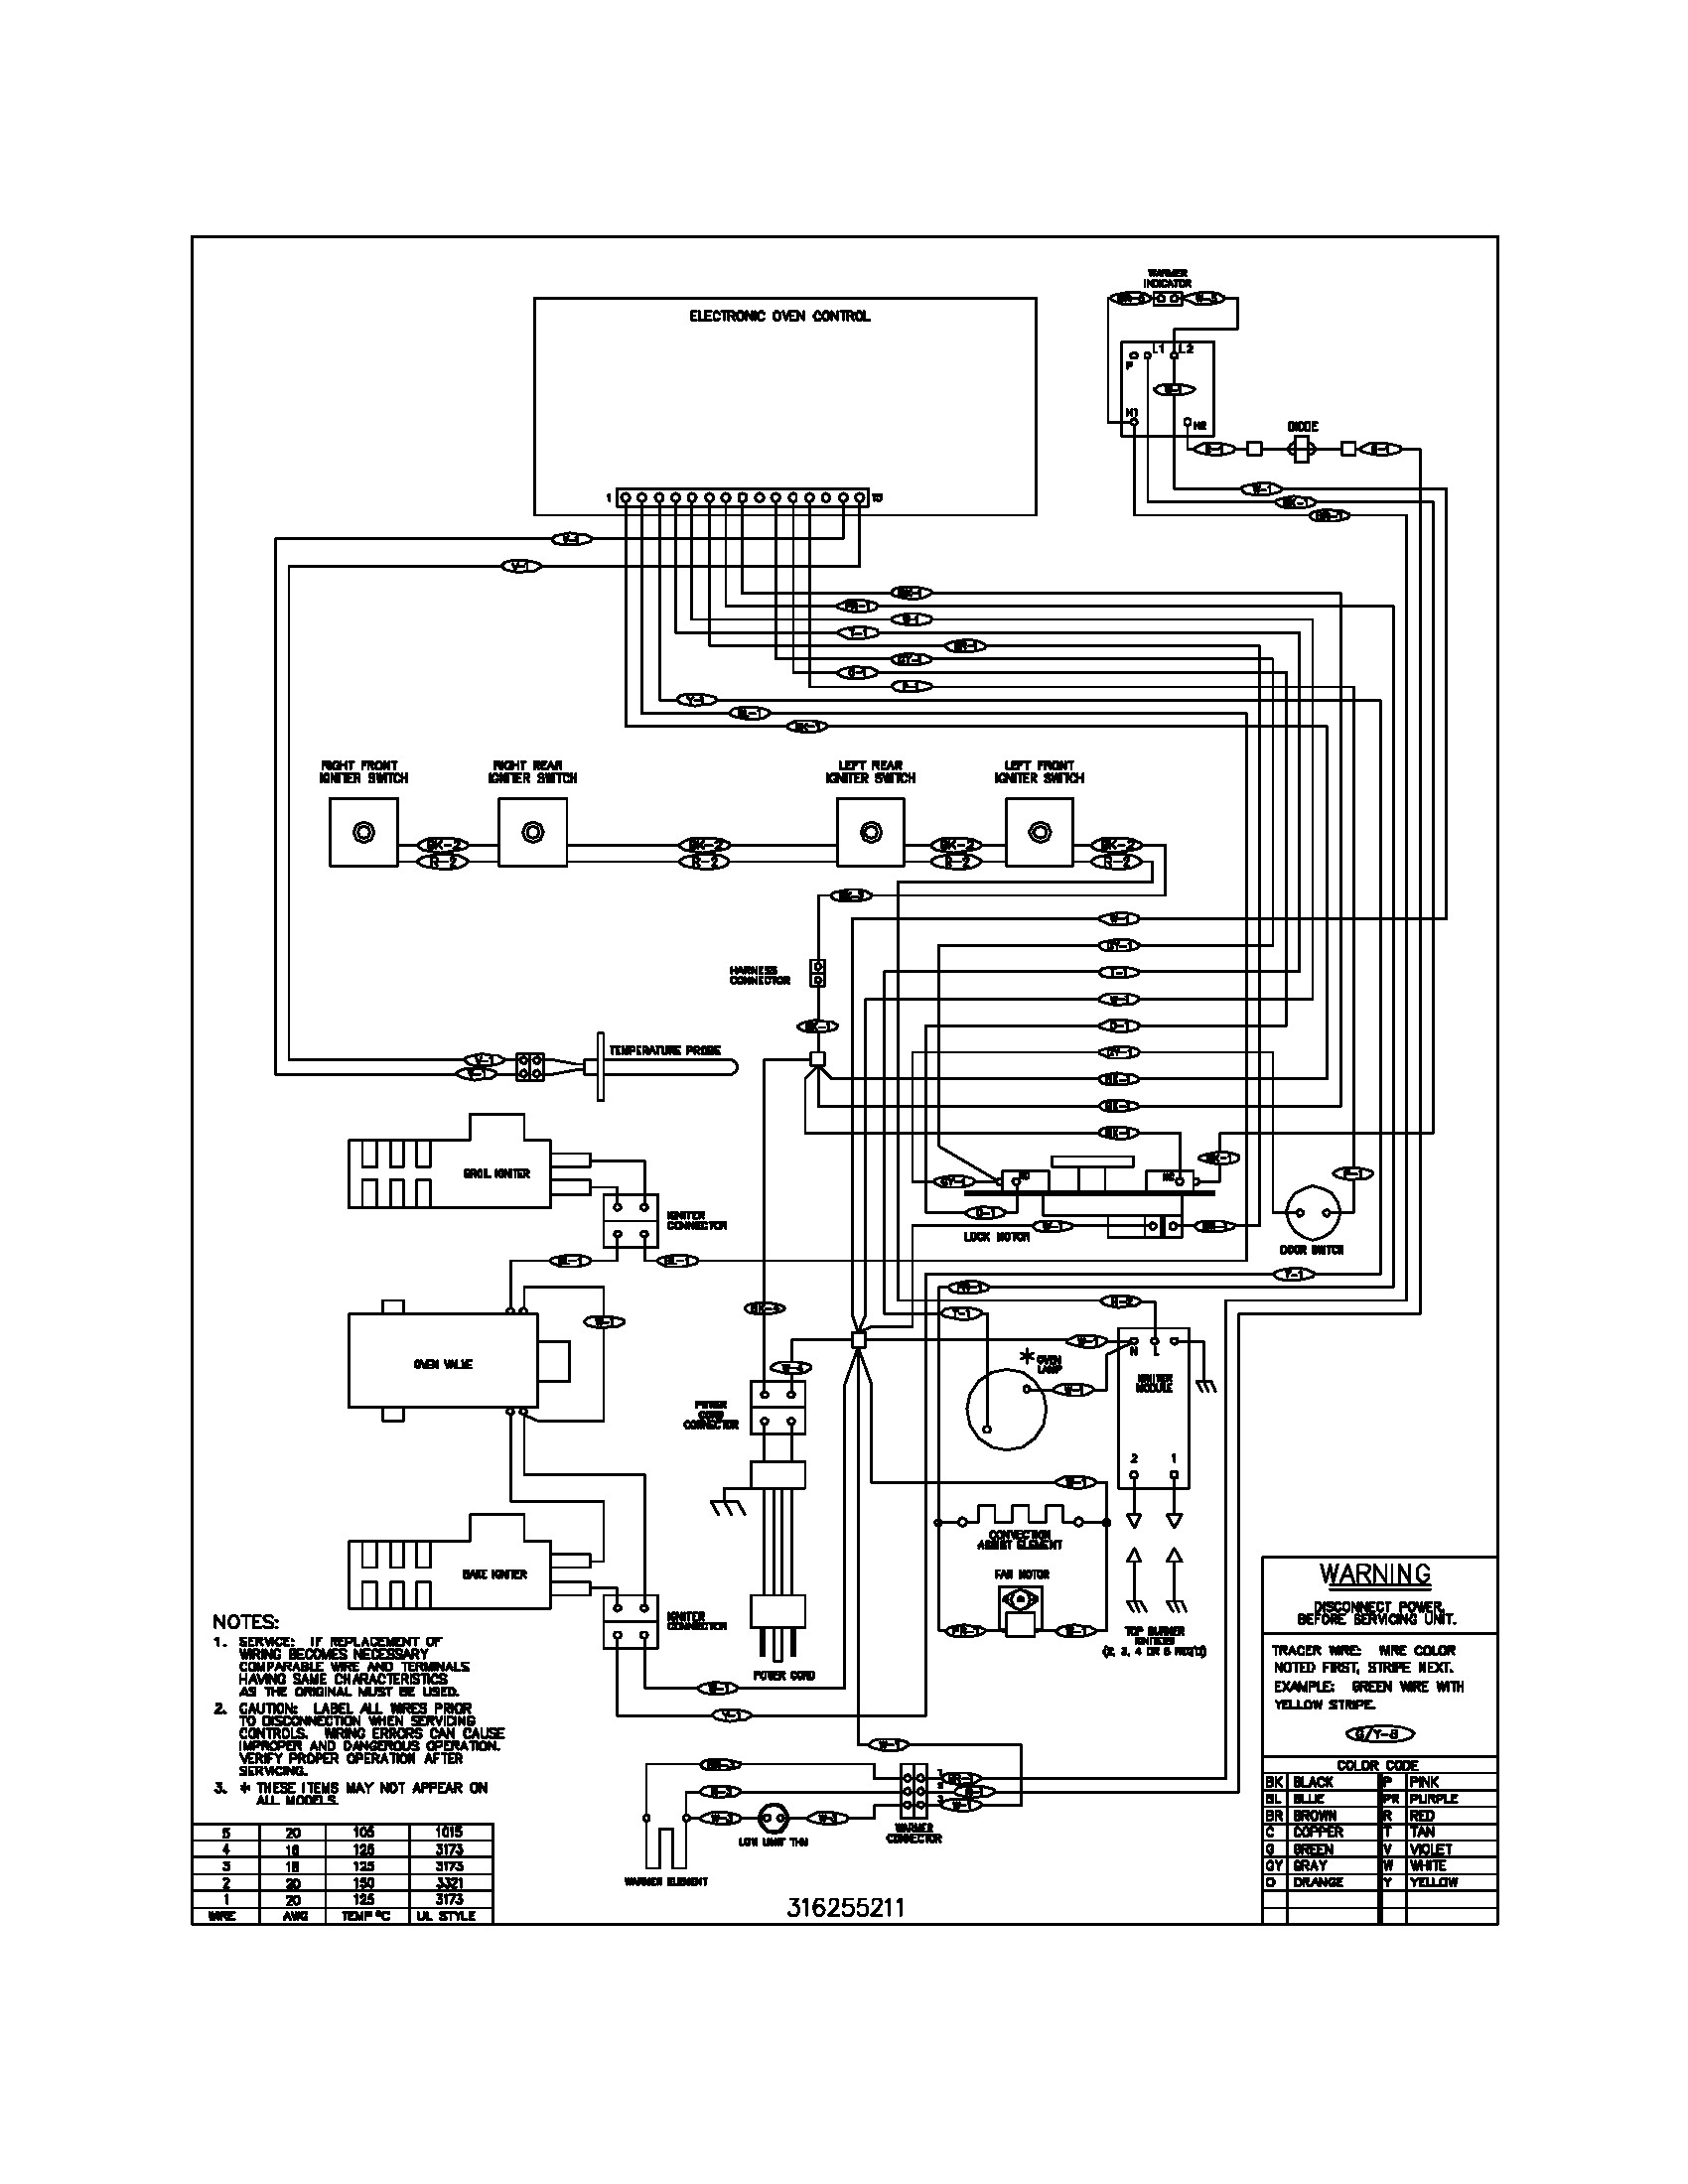 Diagramiring Parts For Refrigerator And Display Coolerire pressor Pdf Ge Defrost Heater Wire Diagram Wiring Repair